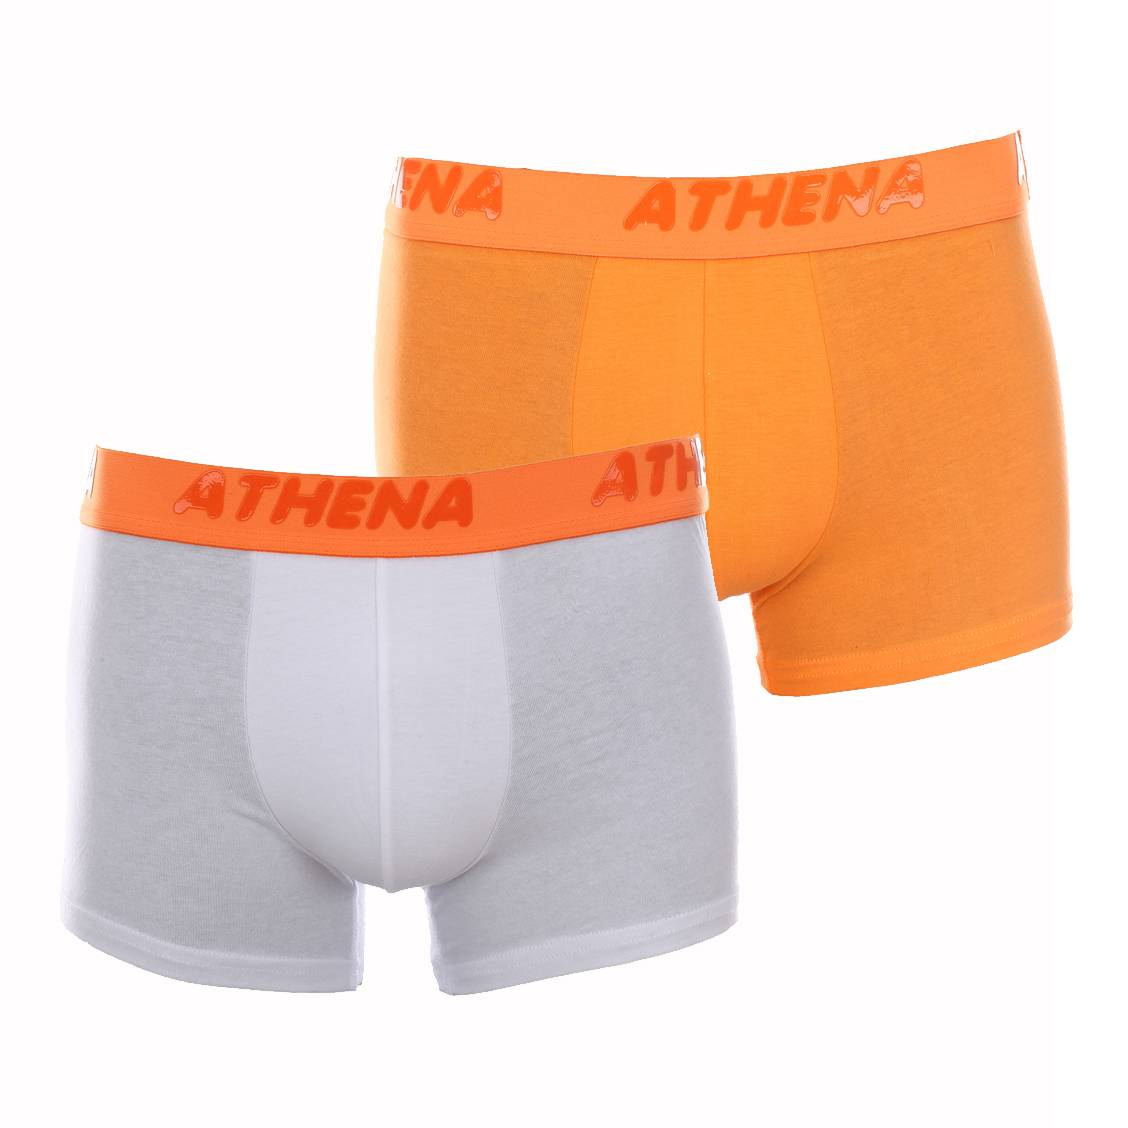 Boxers Athena en coton stretch orange et blanc